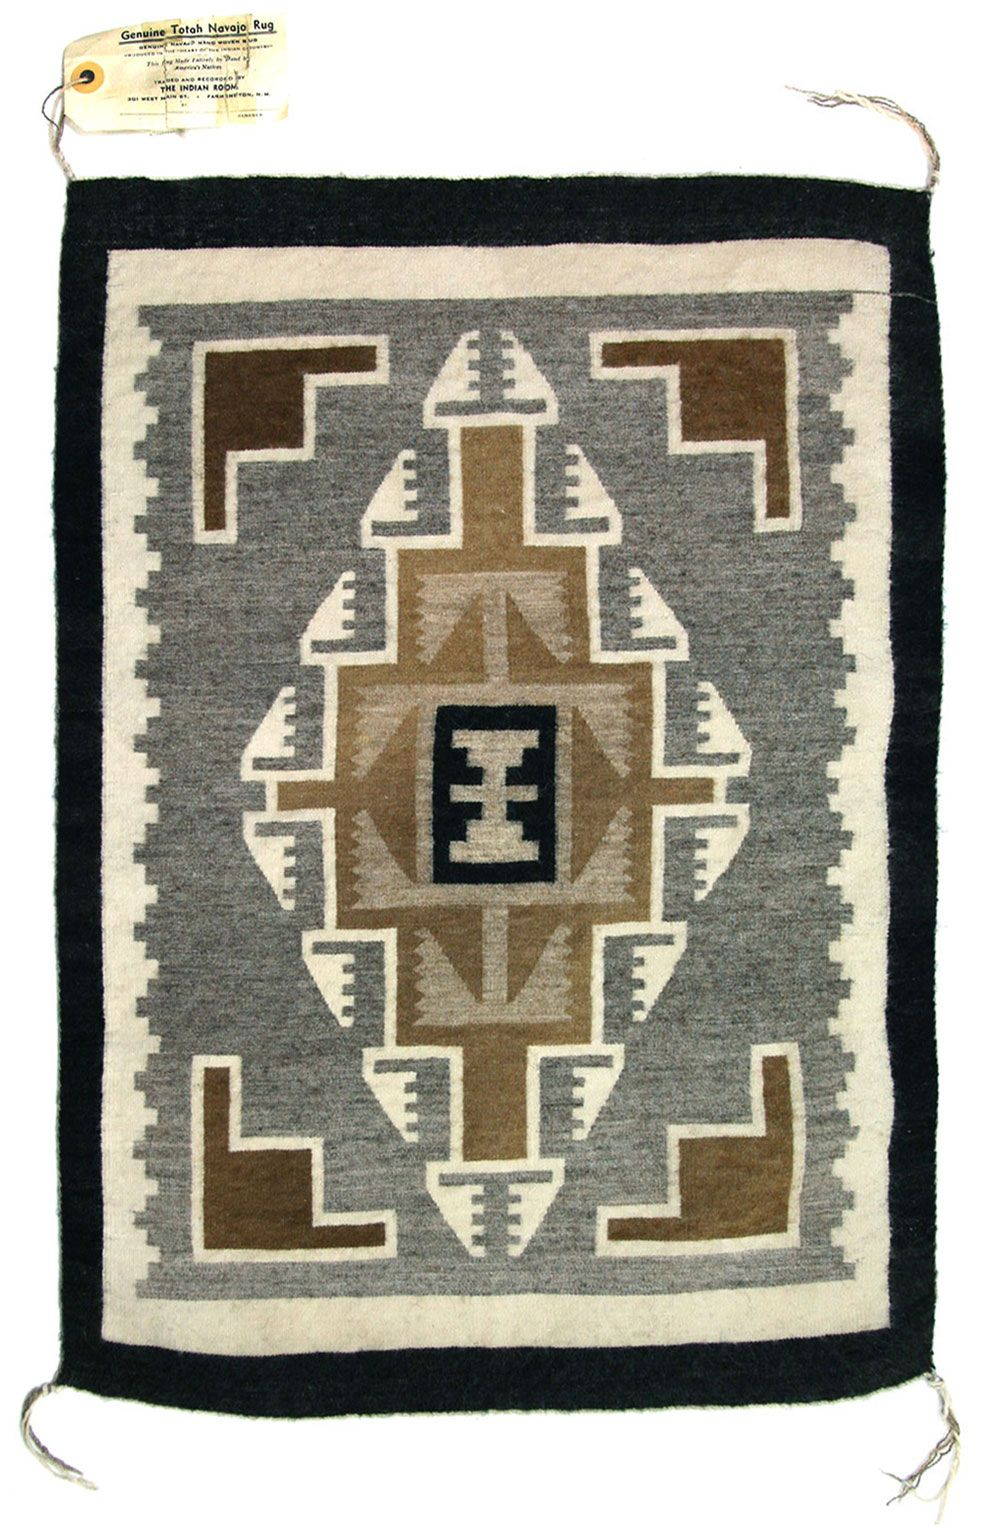 Includes provenance. This rug is in excellent condition